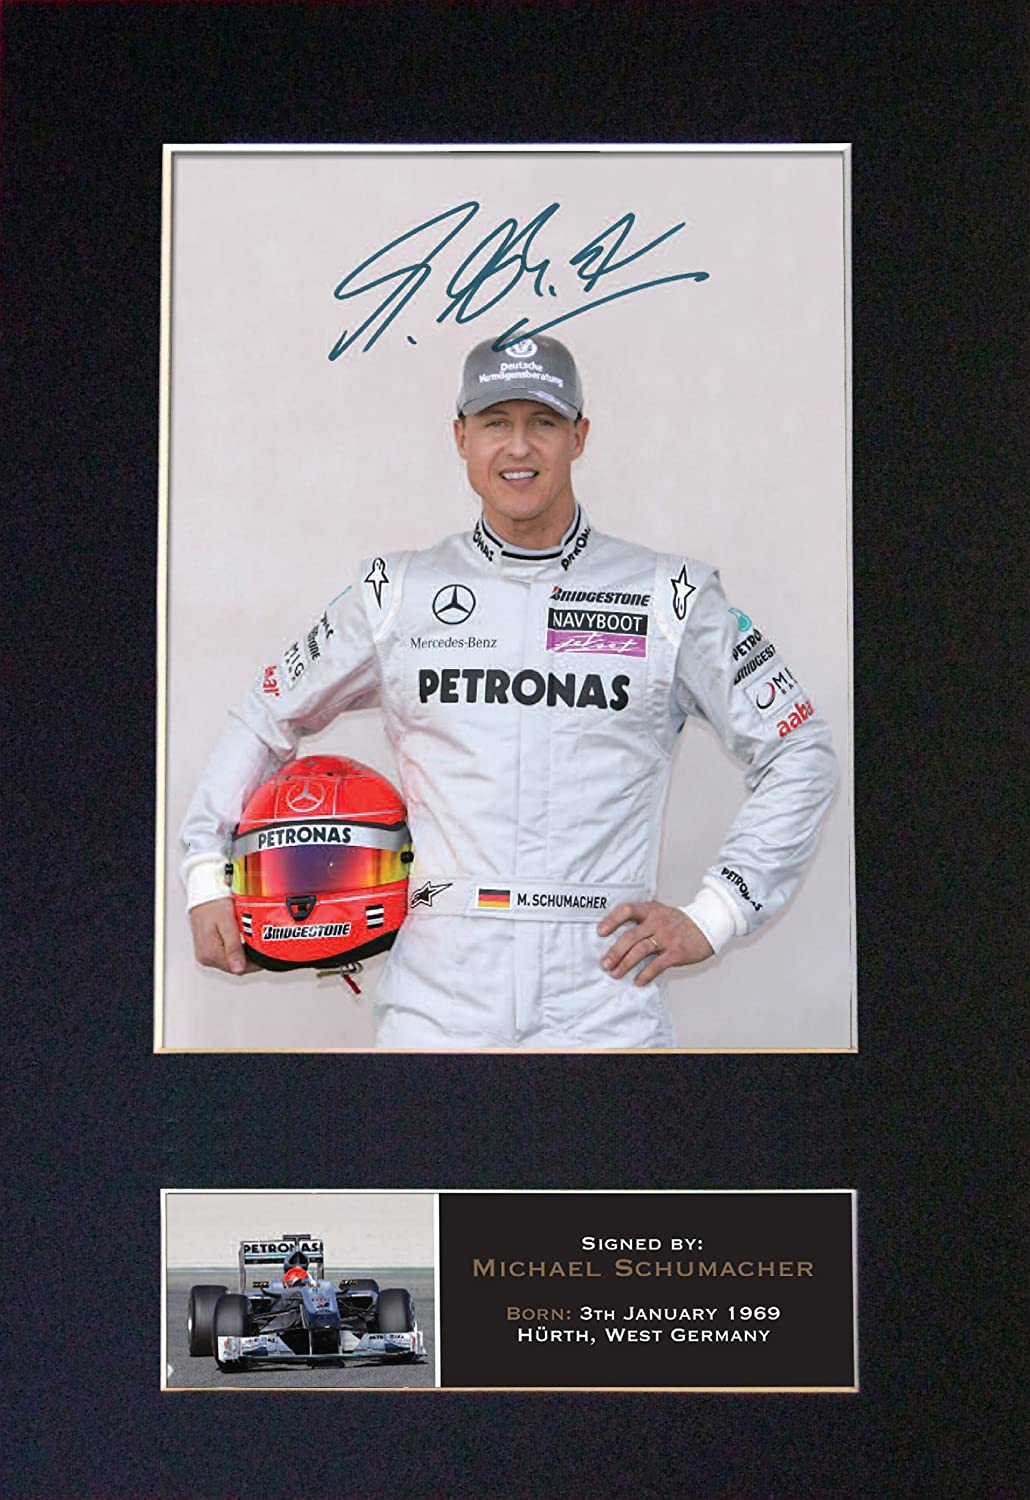 297 x 210mm MICHAEL SCHUMACHER Signed Autograph Mounted Photo Reproduction PRINT A4 Rare Black Frame #425